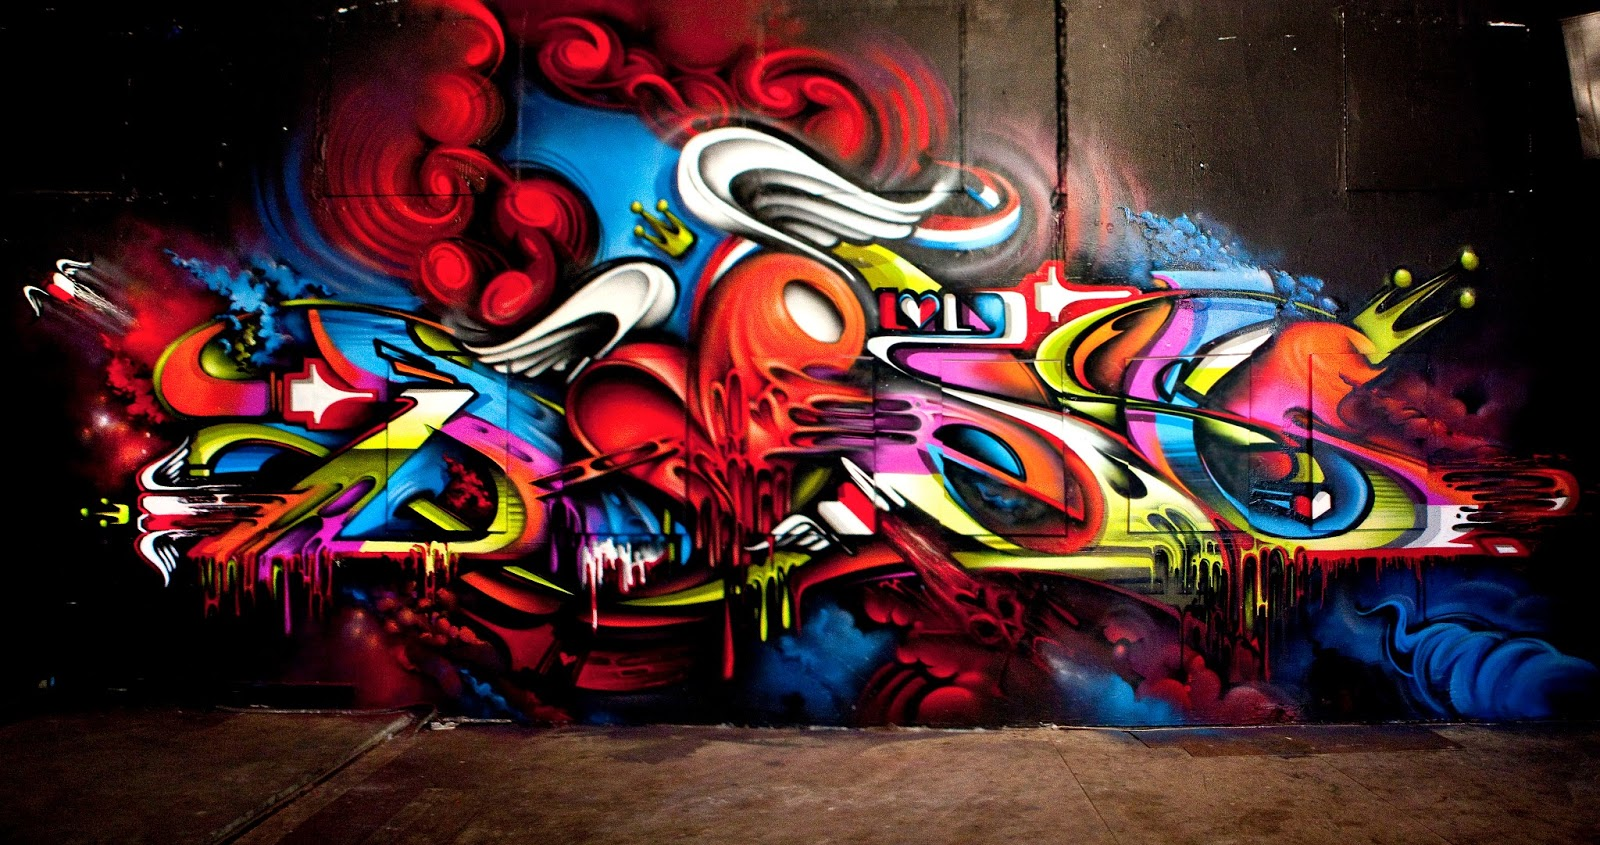 Bright Graffiti on the Wall 727.3 Kb